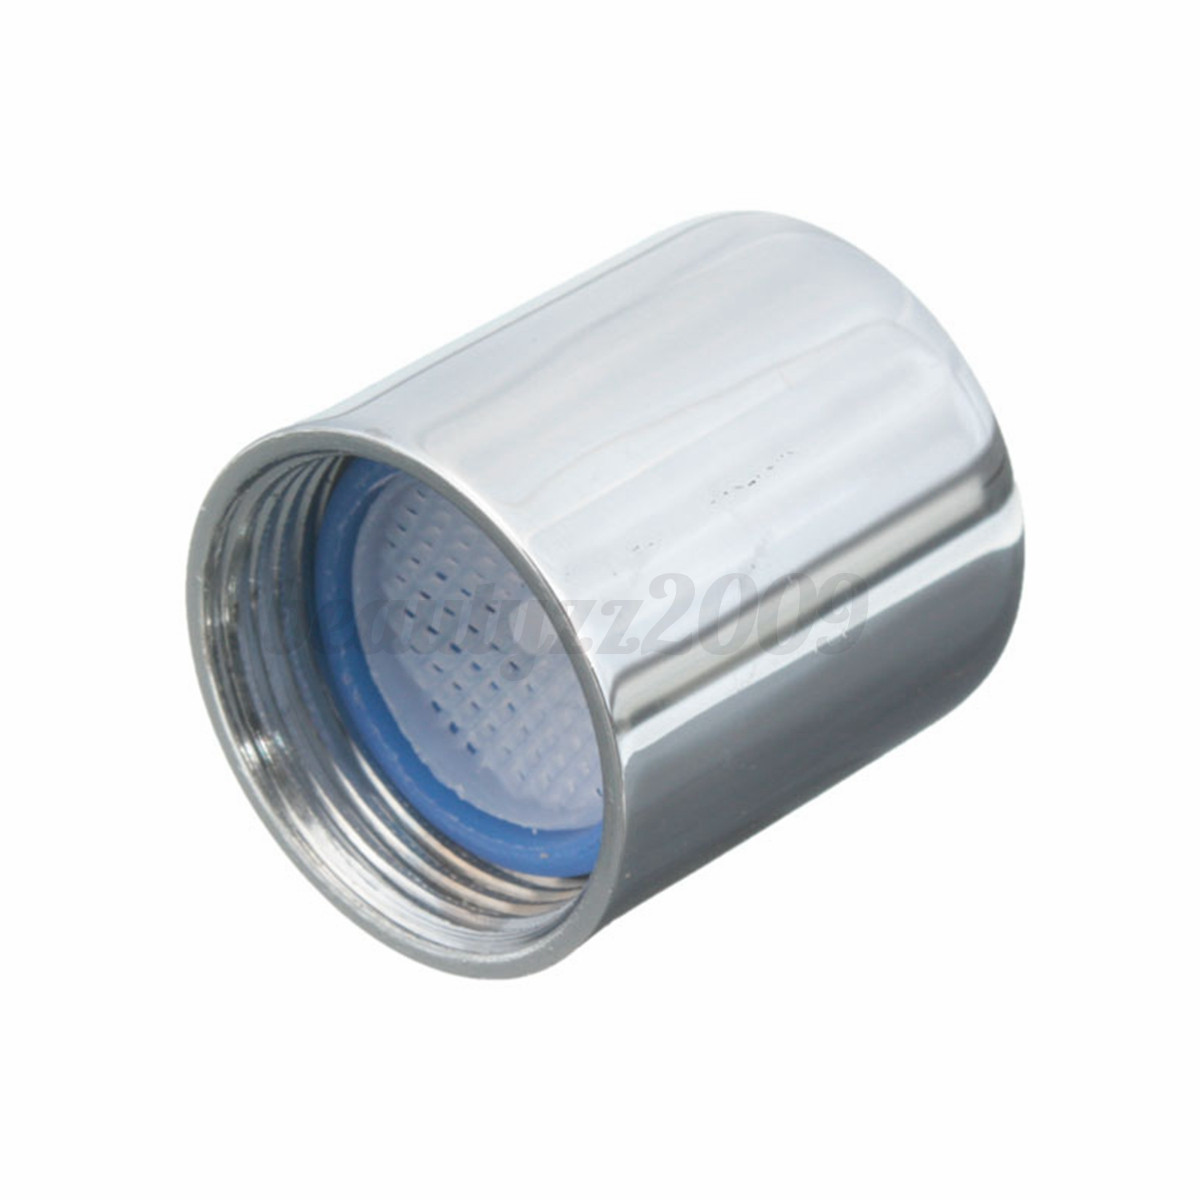 Chromed 16 24mm Swivel Water Tap Aerator Nozzle Faucet Spout Filter Adapter Home Ebay